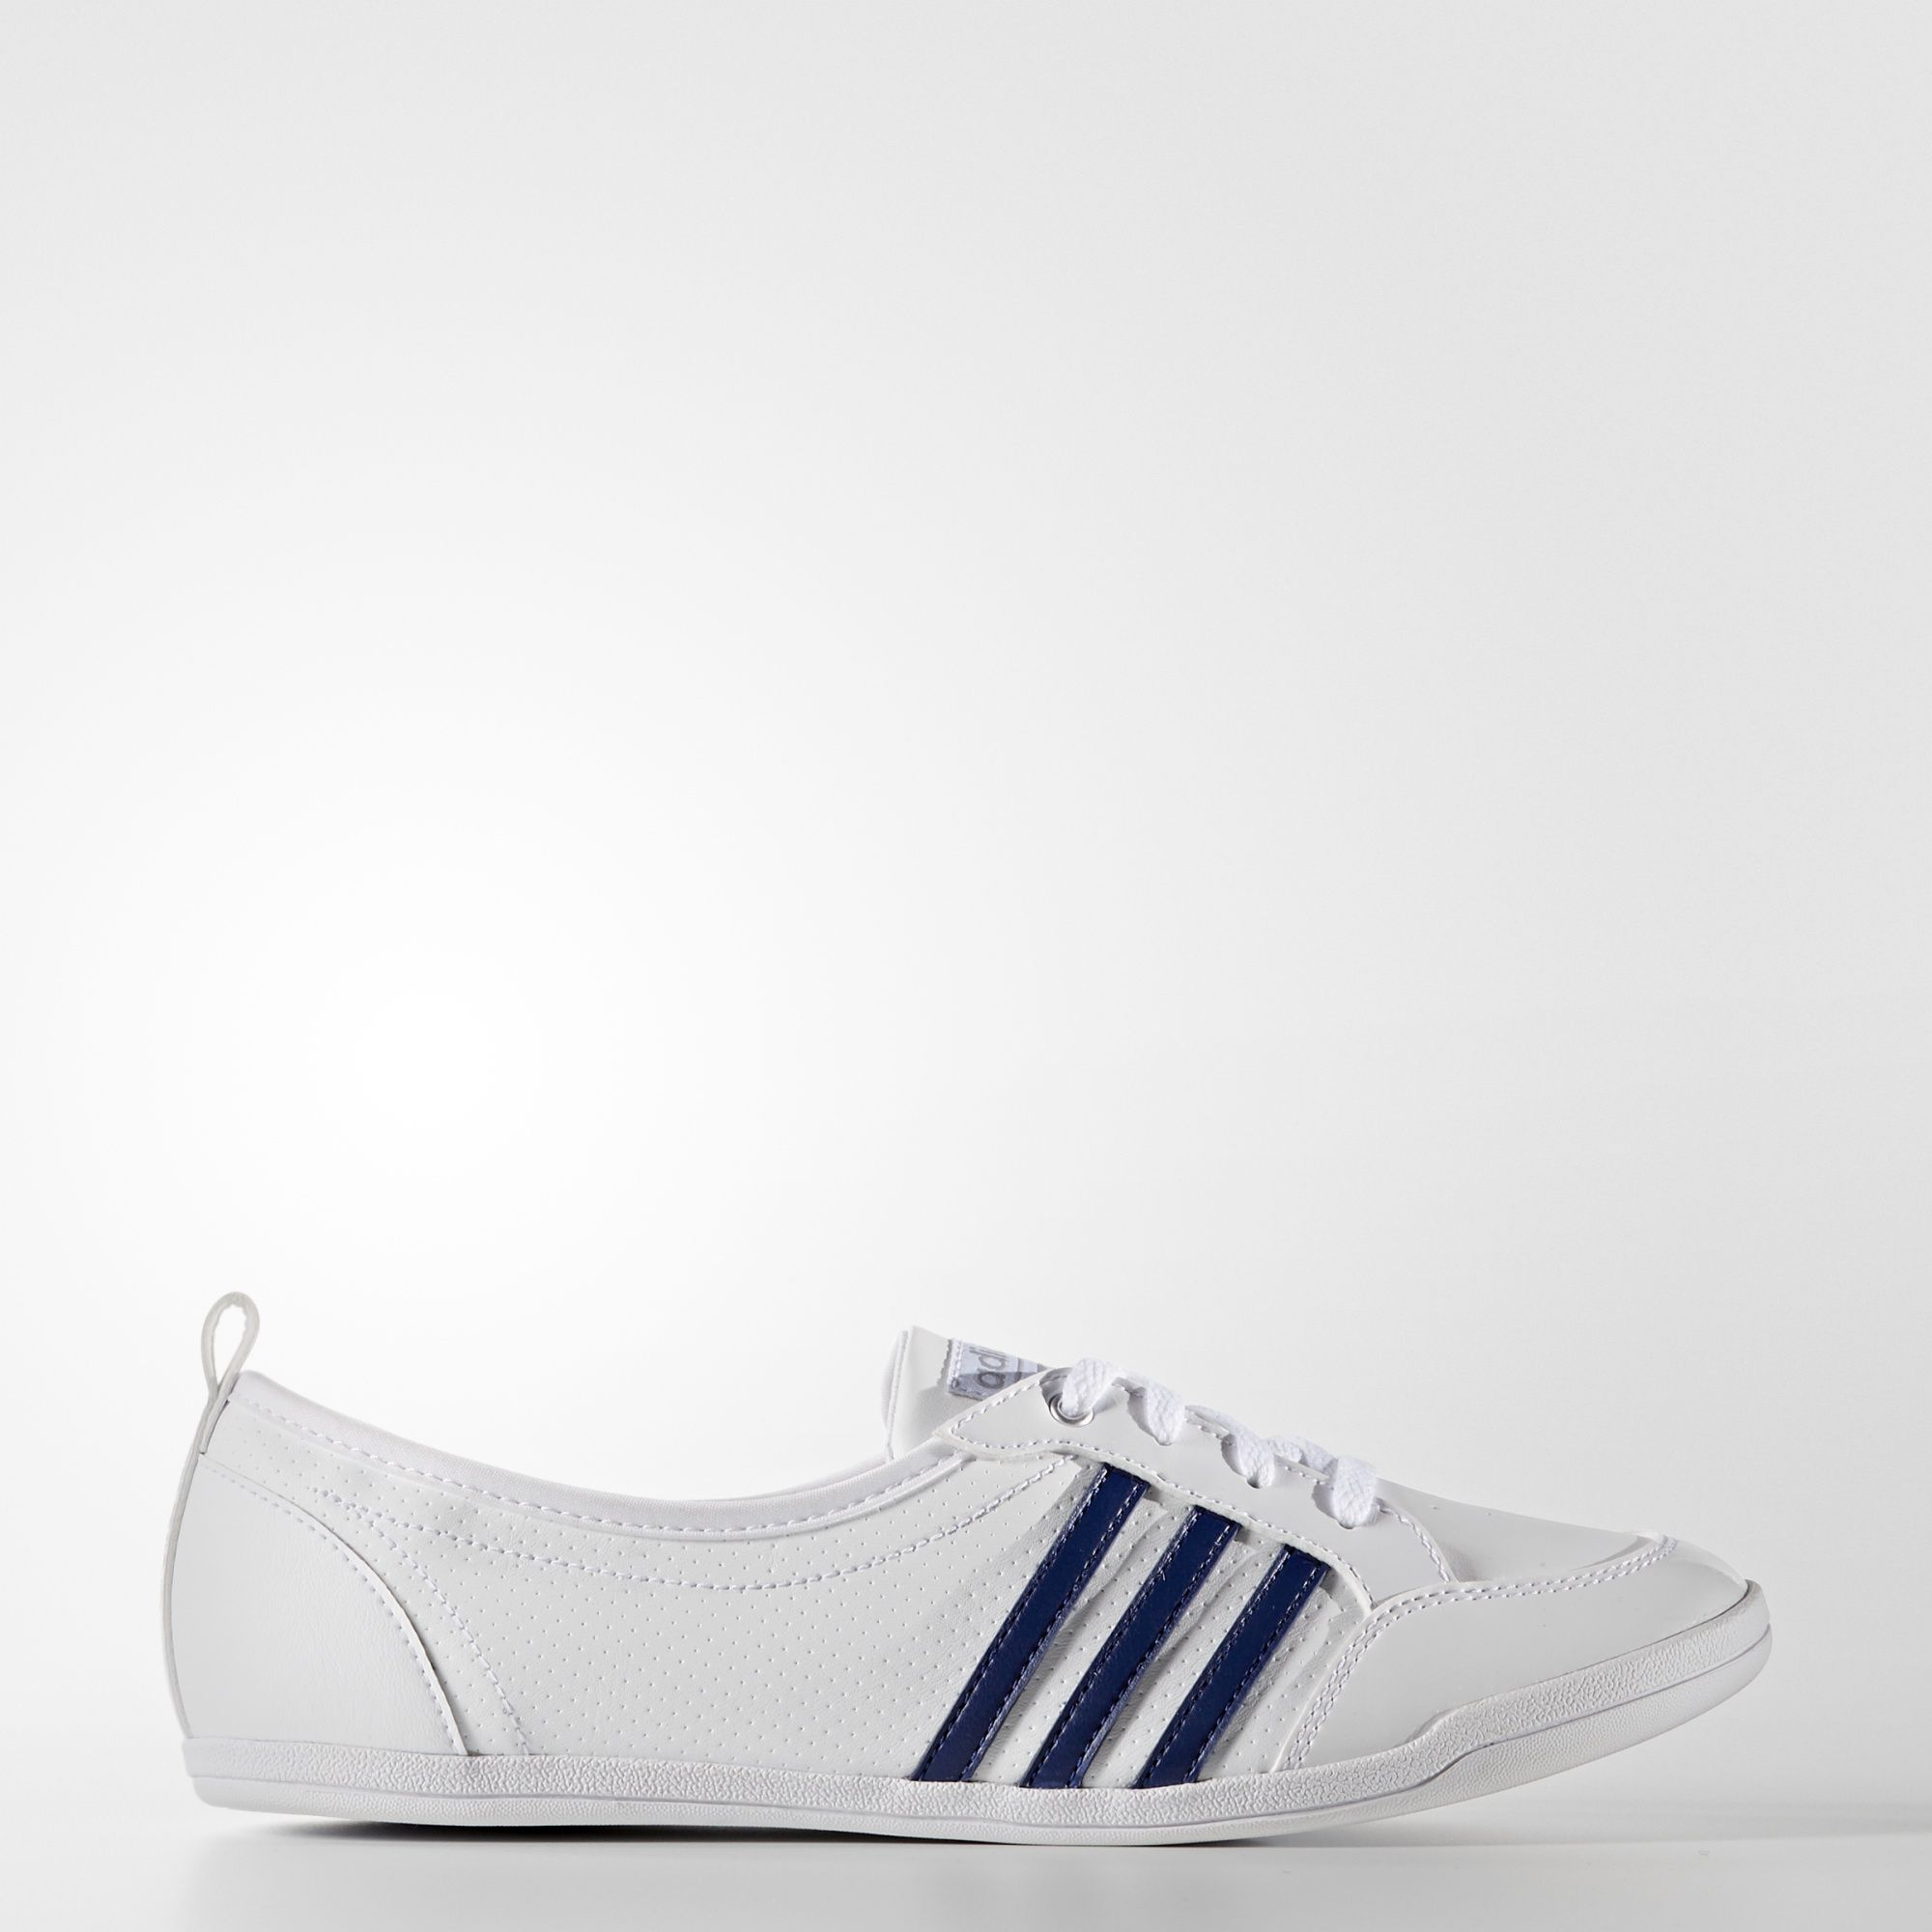 These girls' leather-like shoes fit like. Adidas NeoAdidas ...